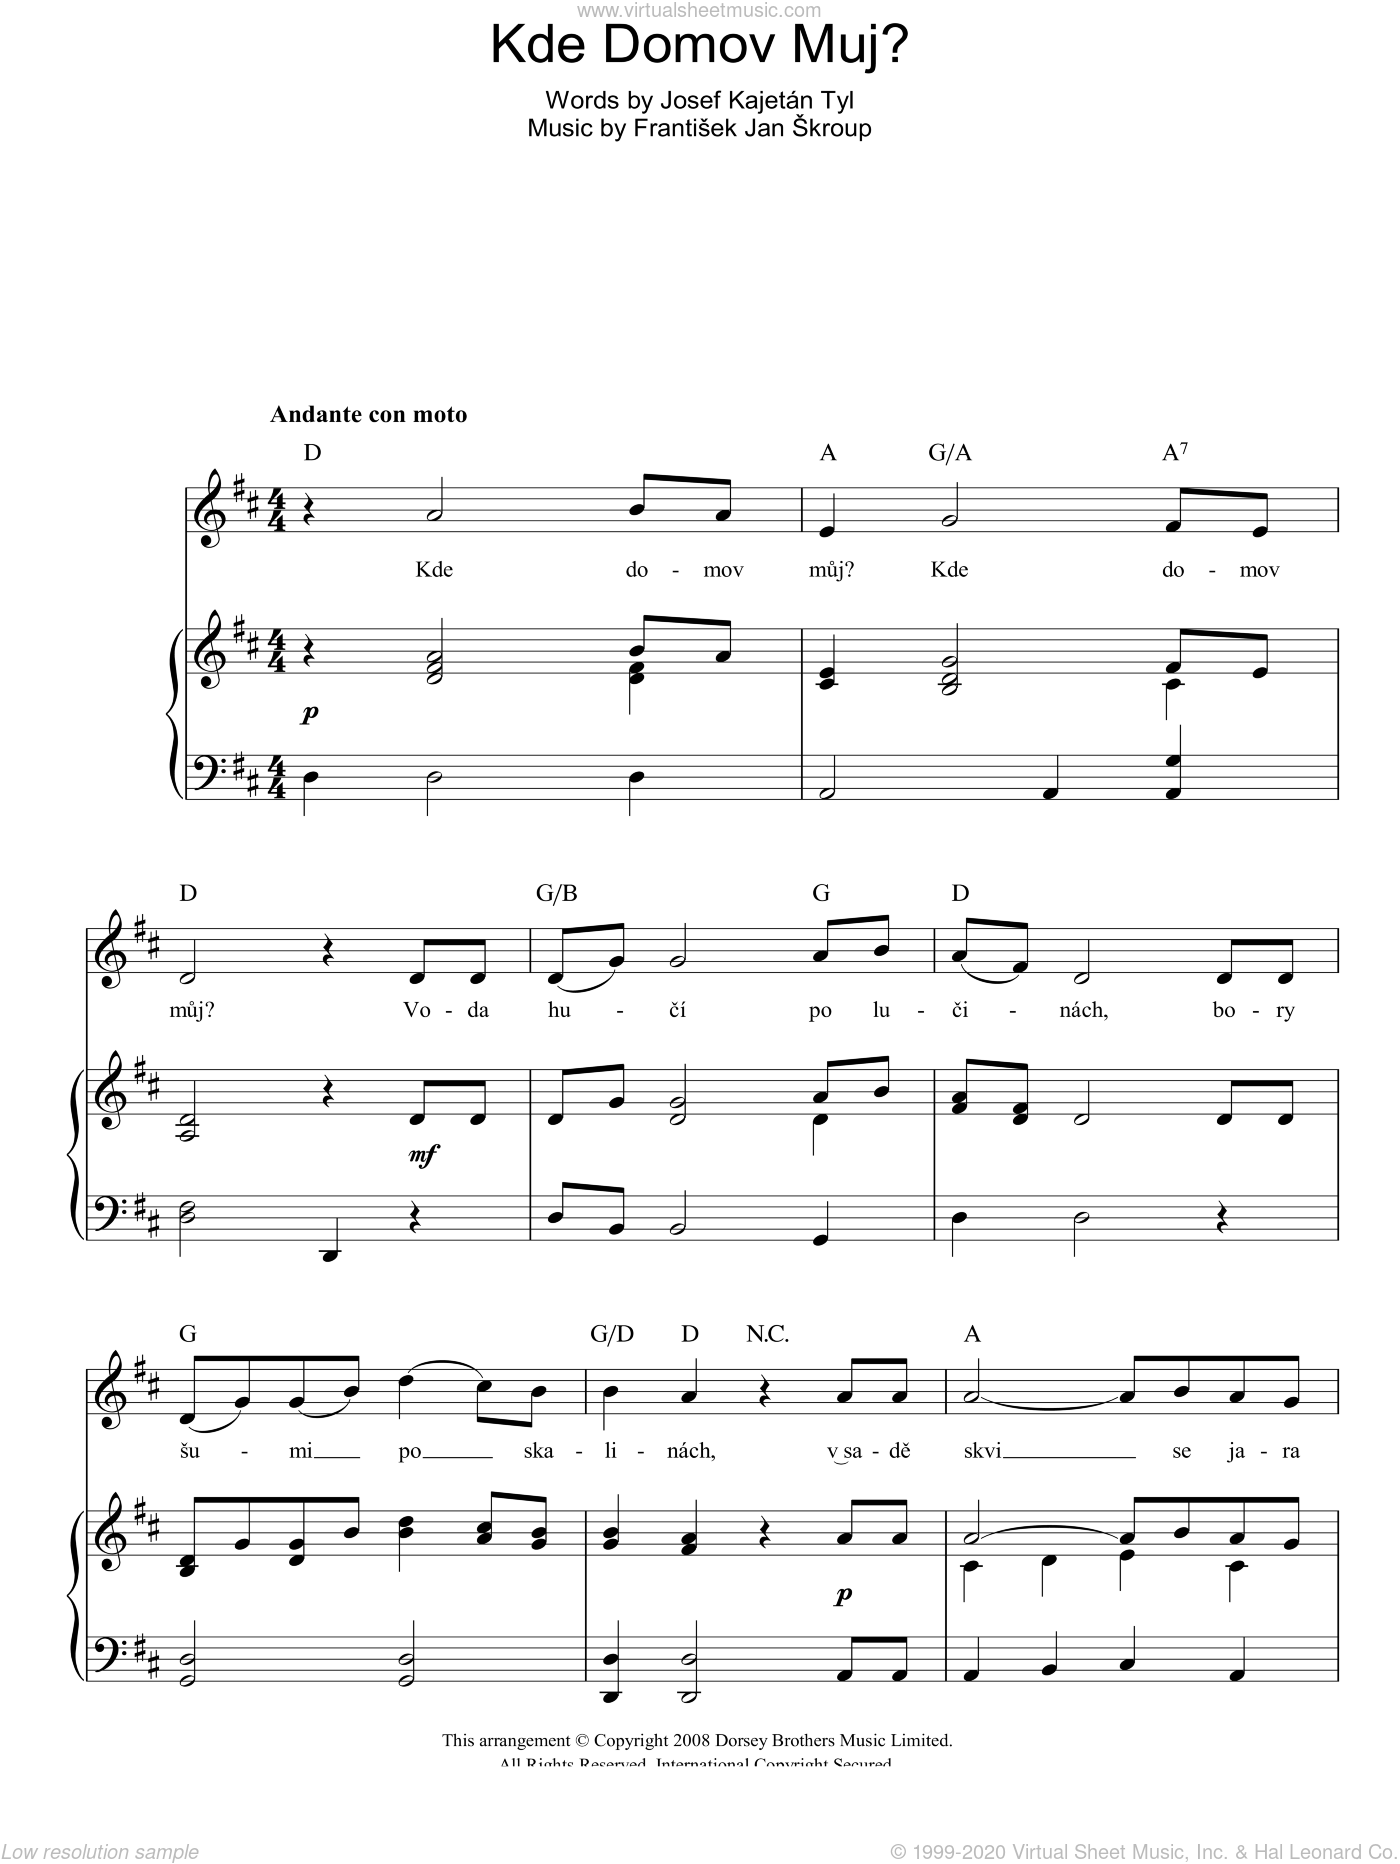 Kde Domov Muj? (Czech Republic National Anthem) sheet music for voice, piano or guitar by Frantisek Jan Skroup, intermediate voice, piano or guitar. Score Image Preview.